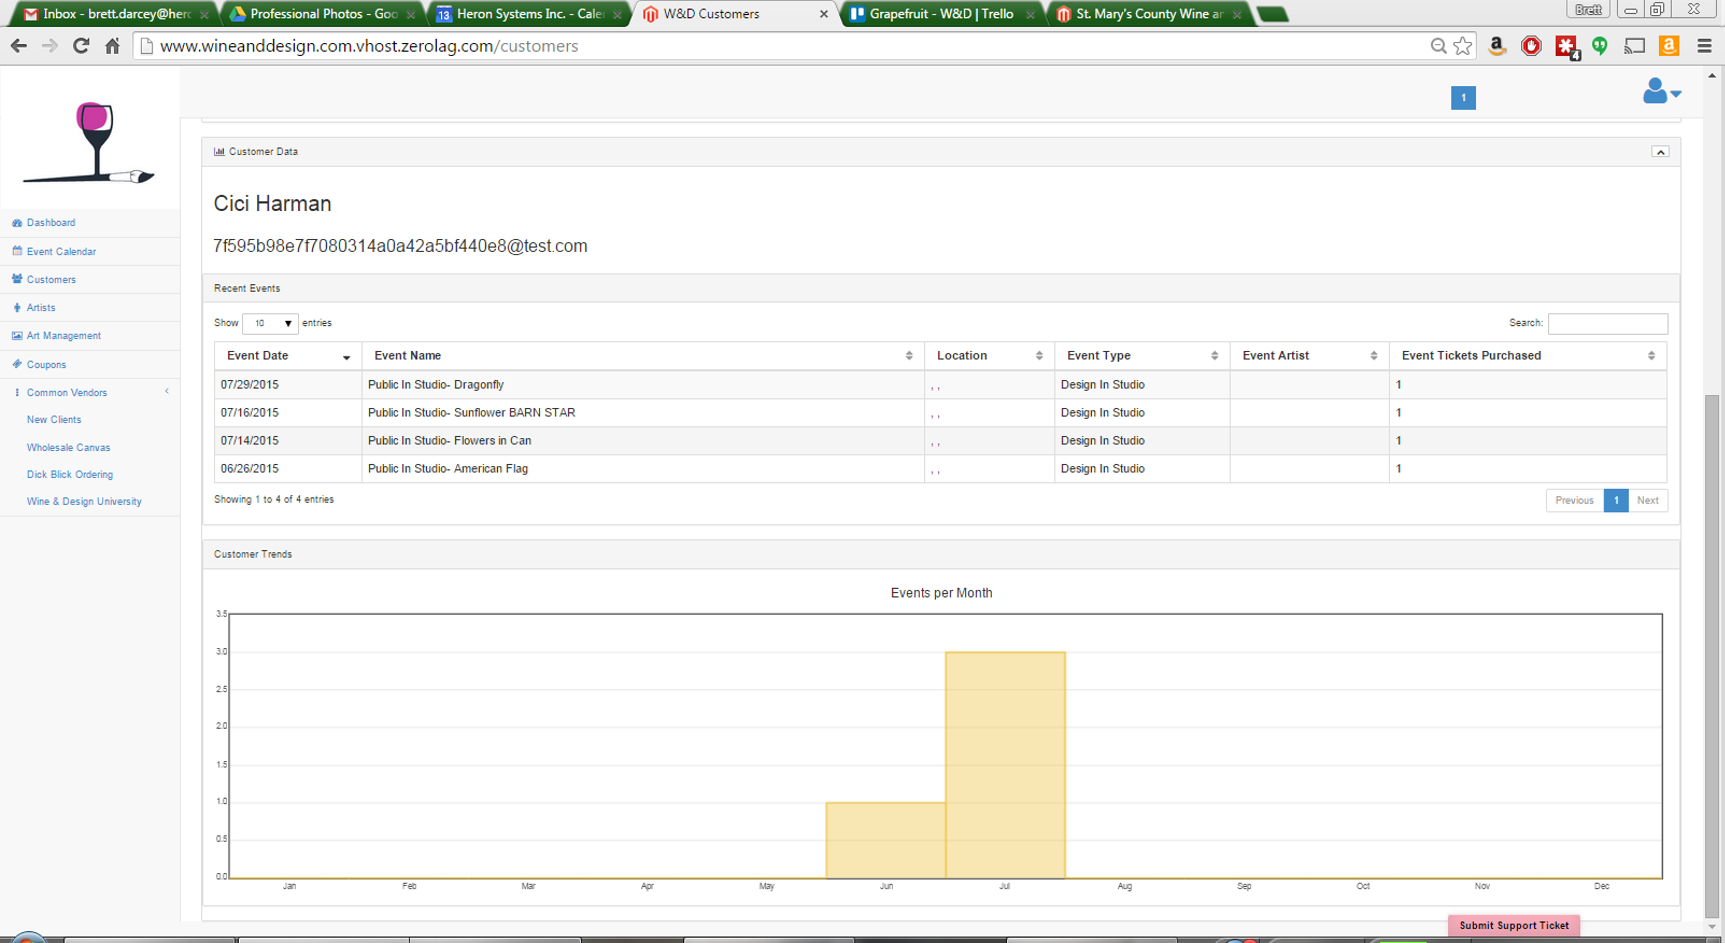 Customer data view. note that we are zoomed out to allow you to see everything in one screenshot.